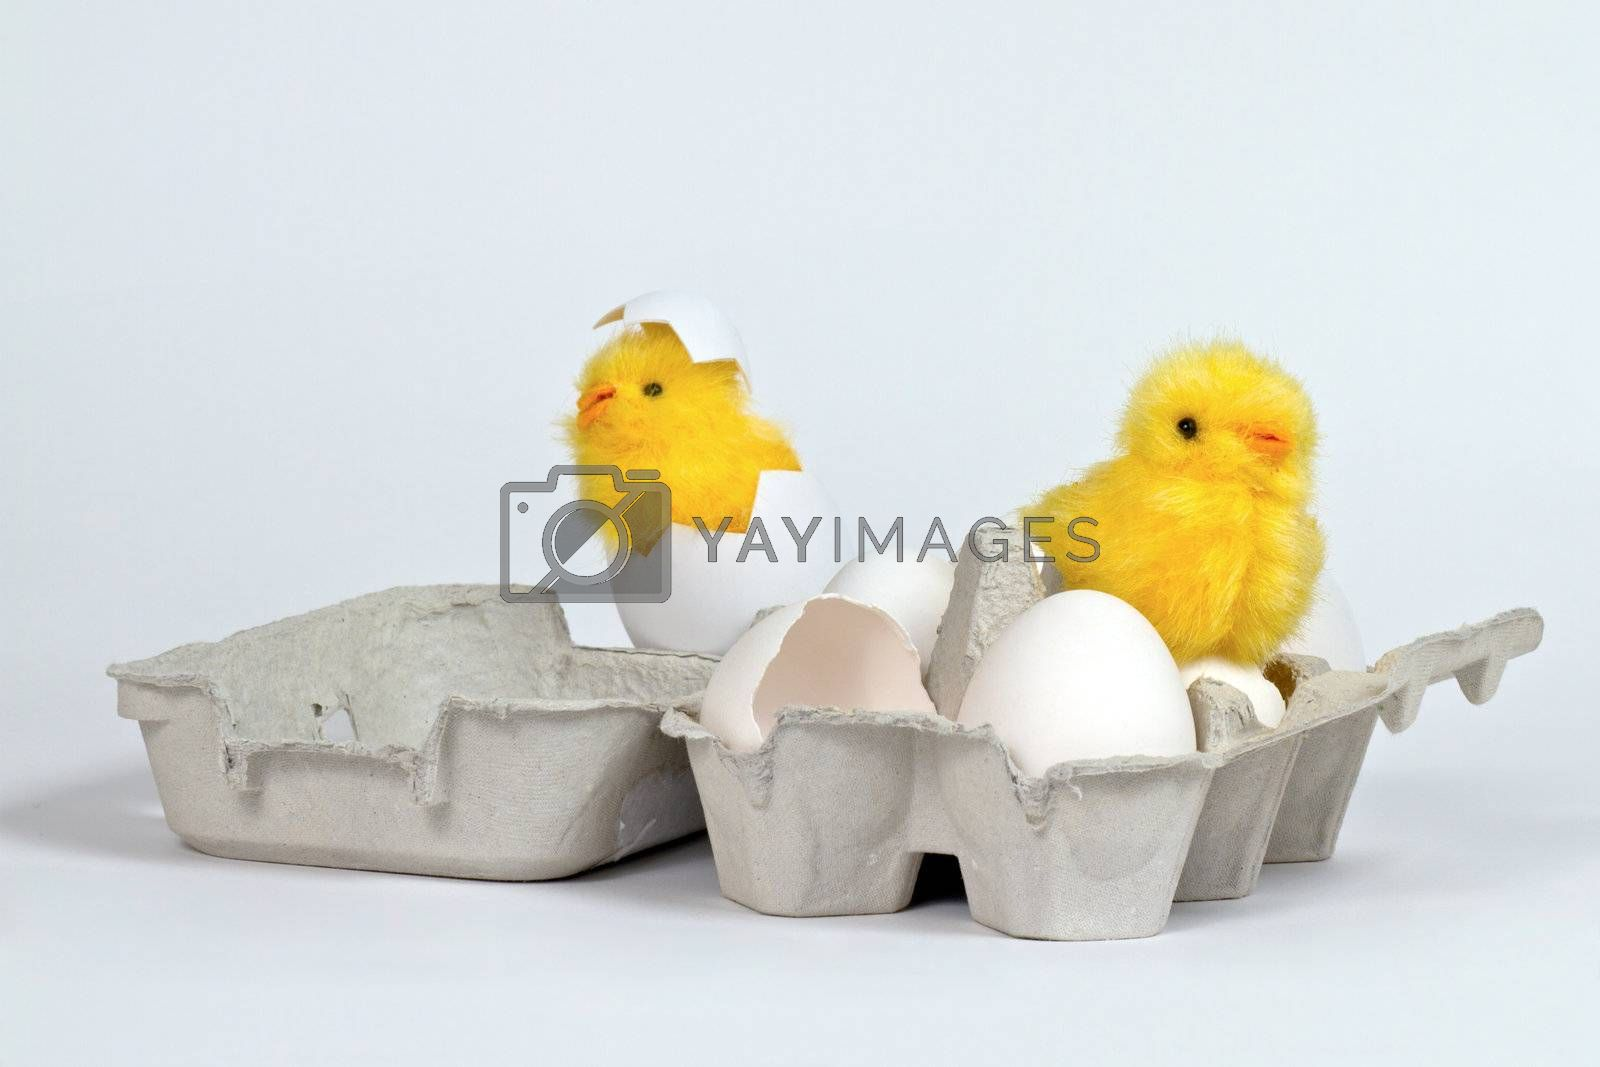 Newly hatched toy chicks in eggbox with white eggs. Hi-key